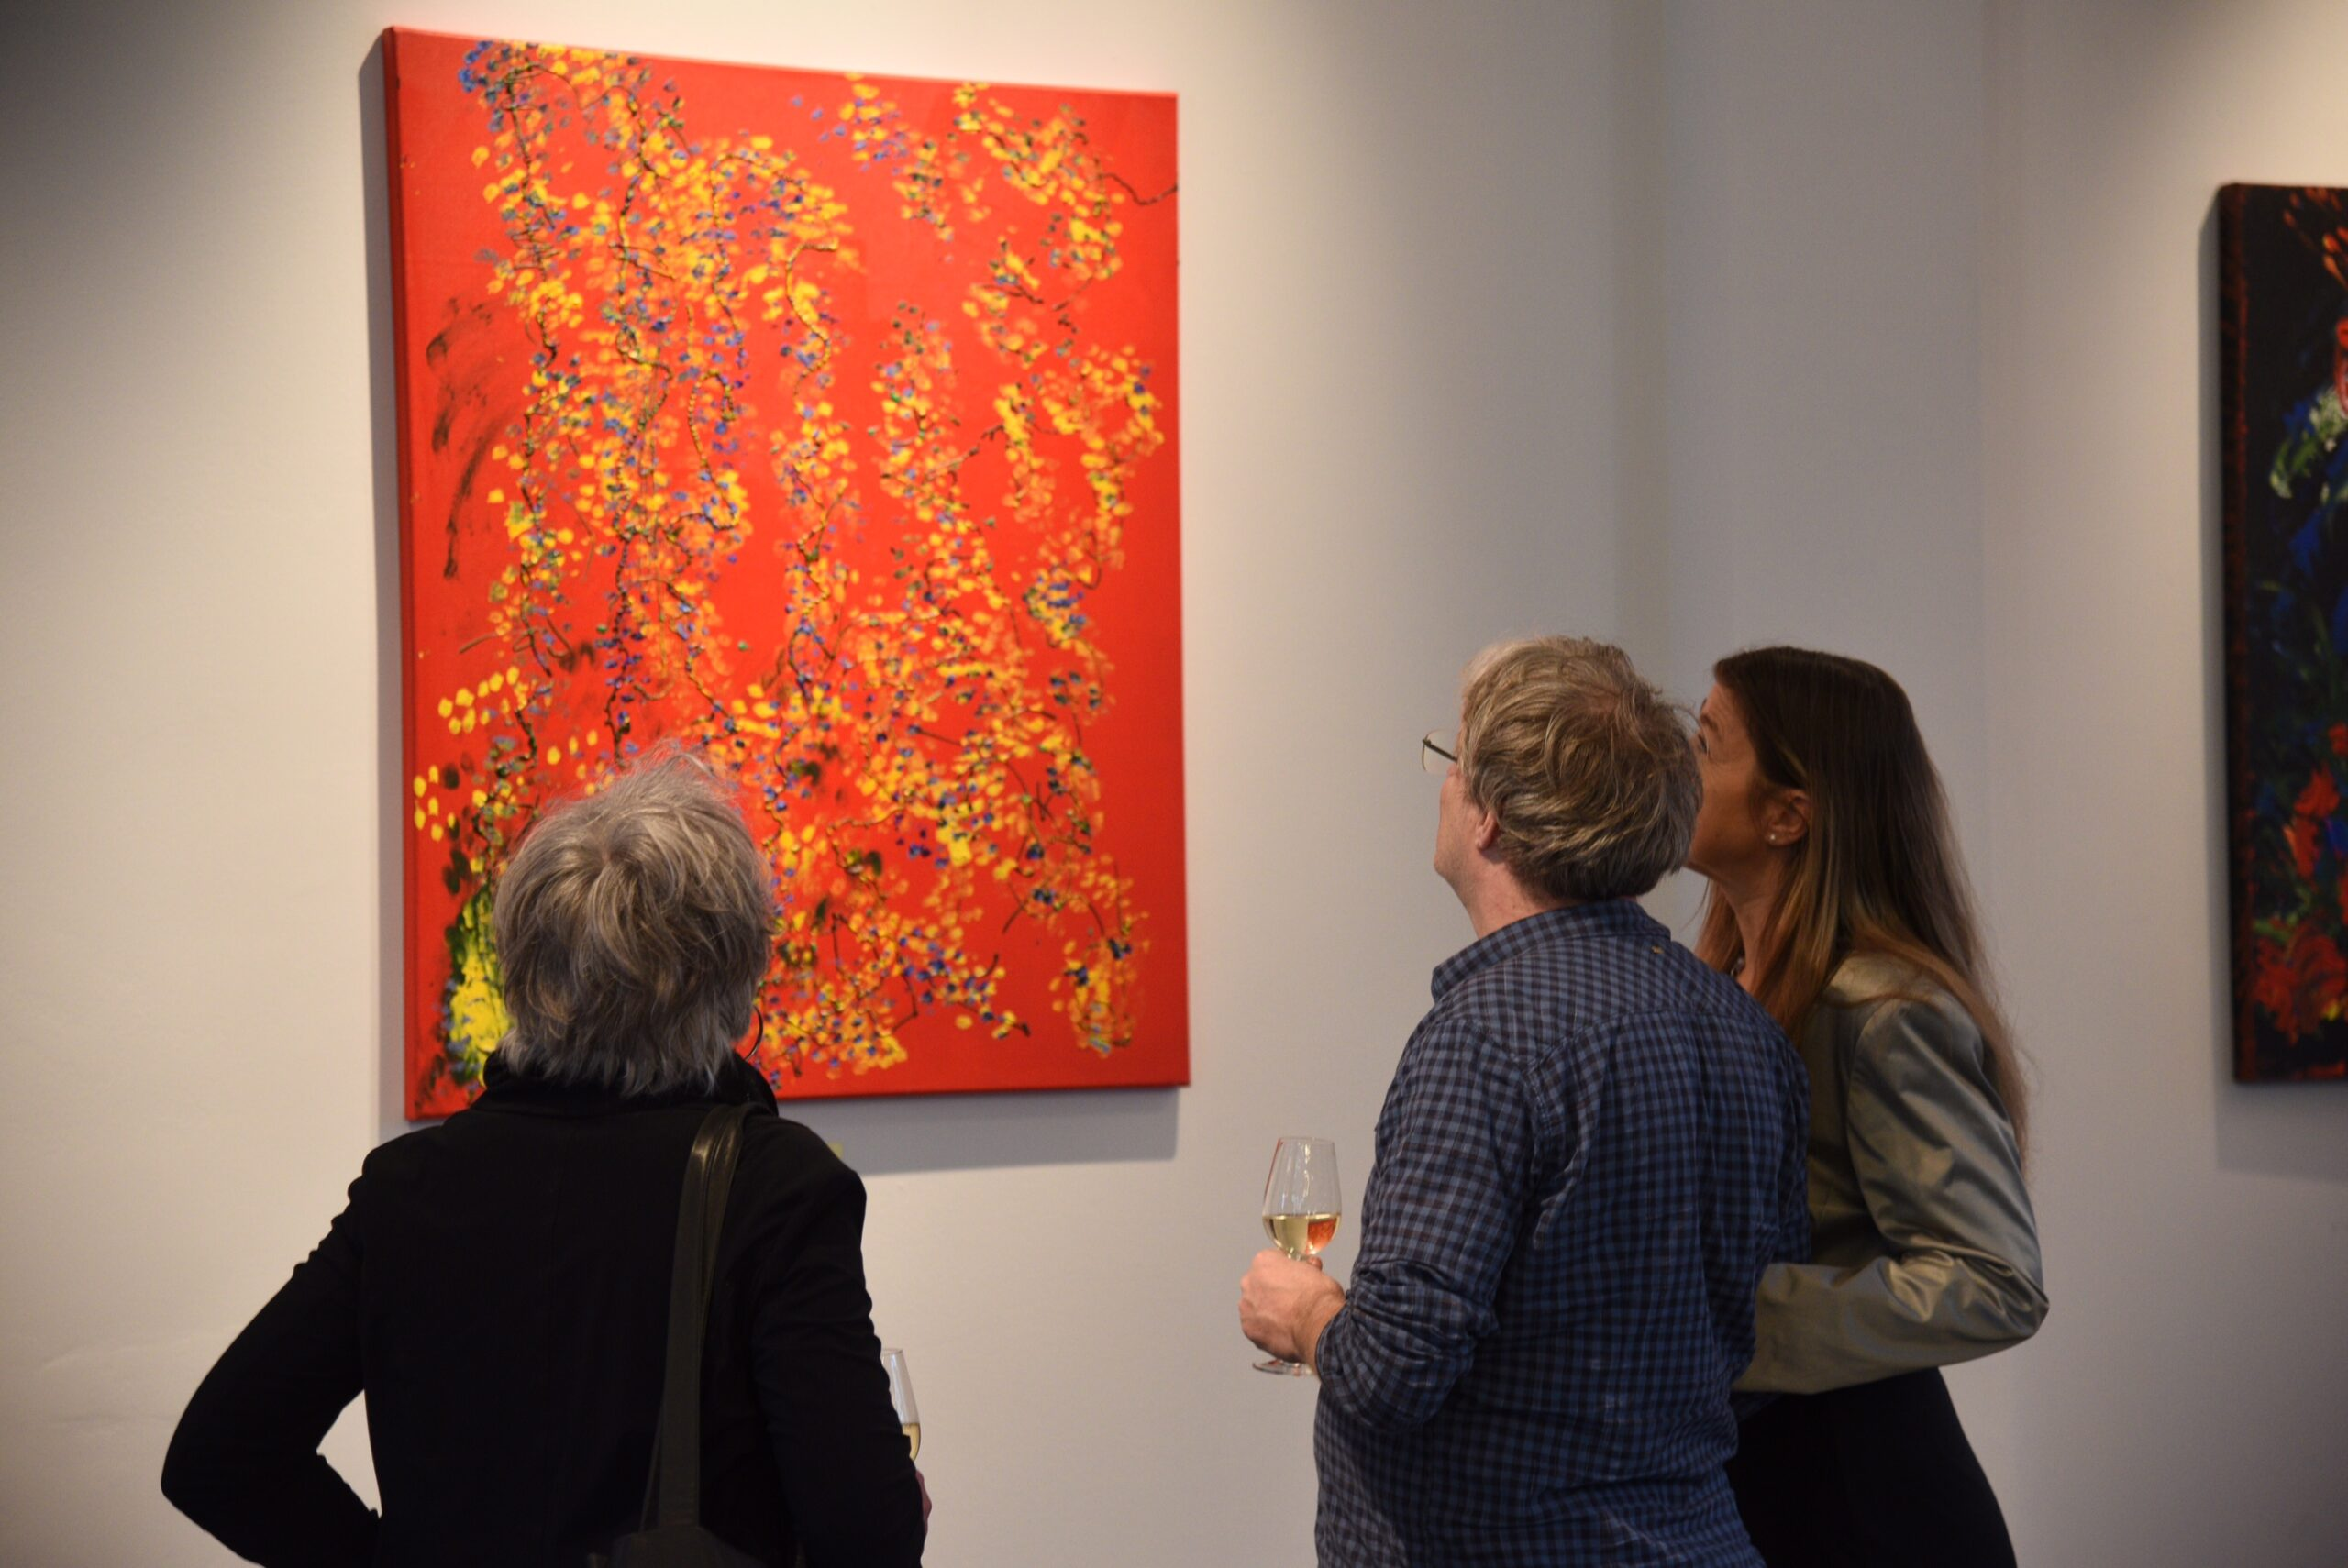 Laura Meddens provides a tour of her paintings at Parc Broekhuizen.